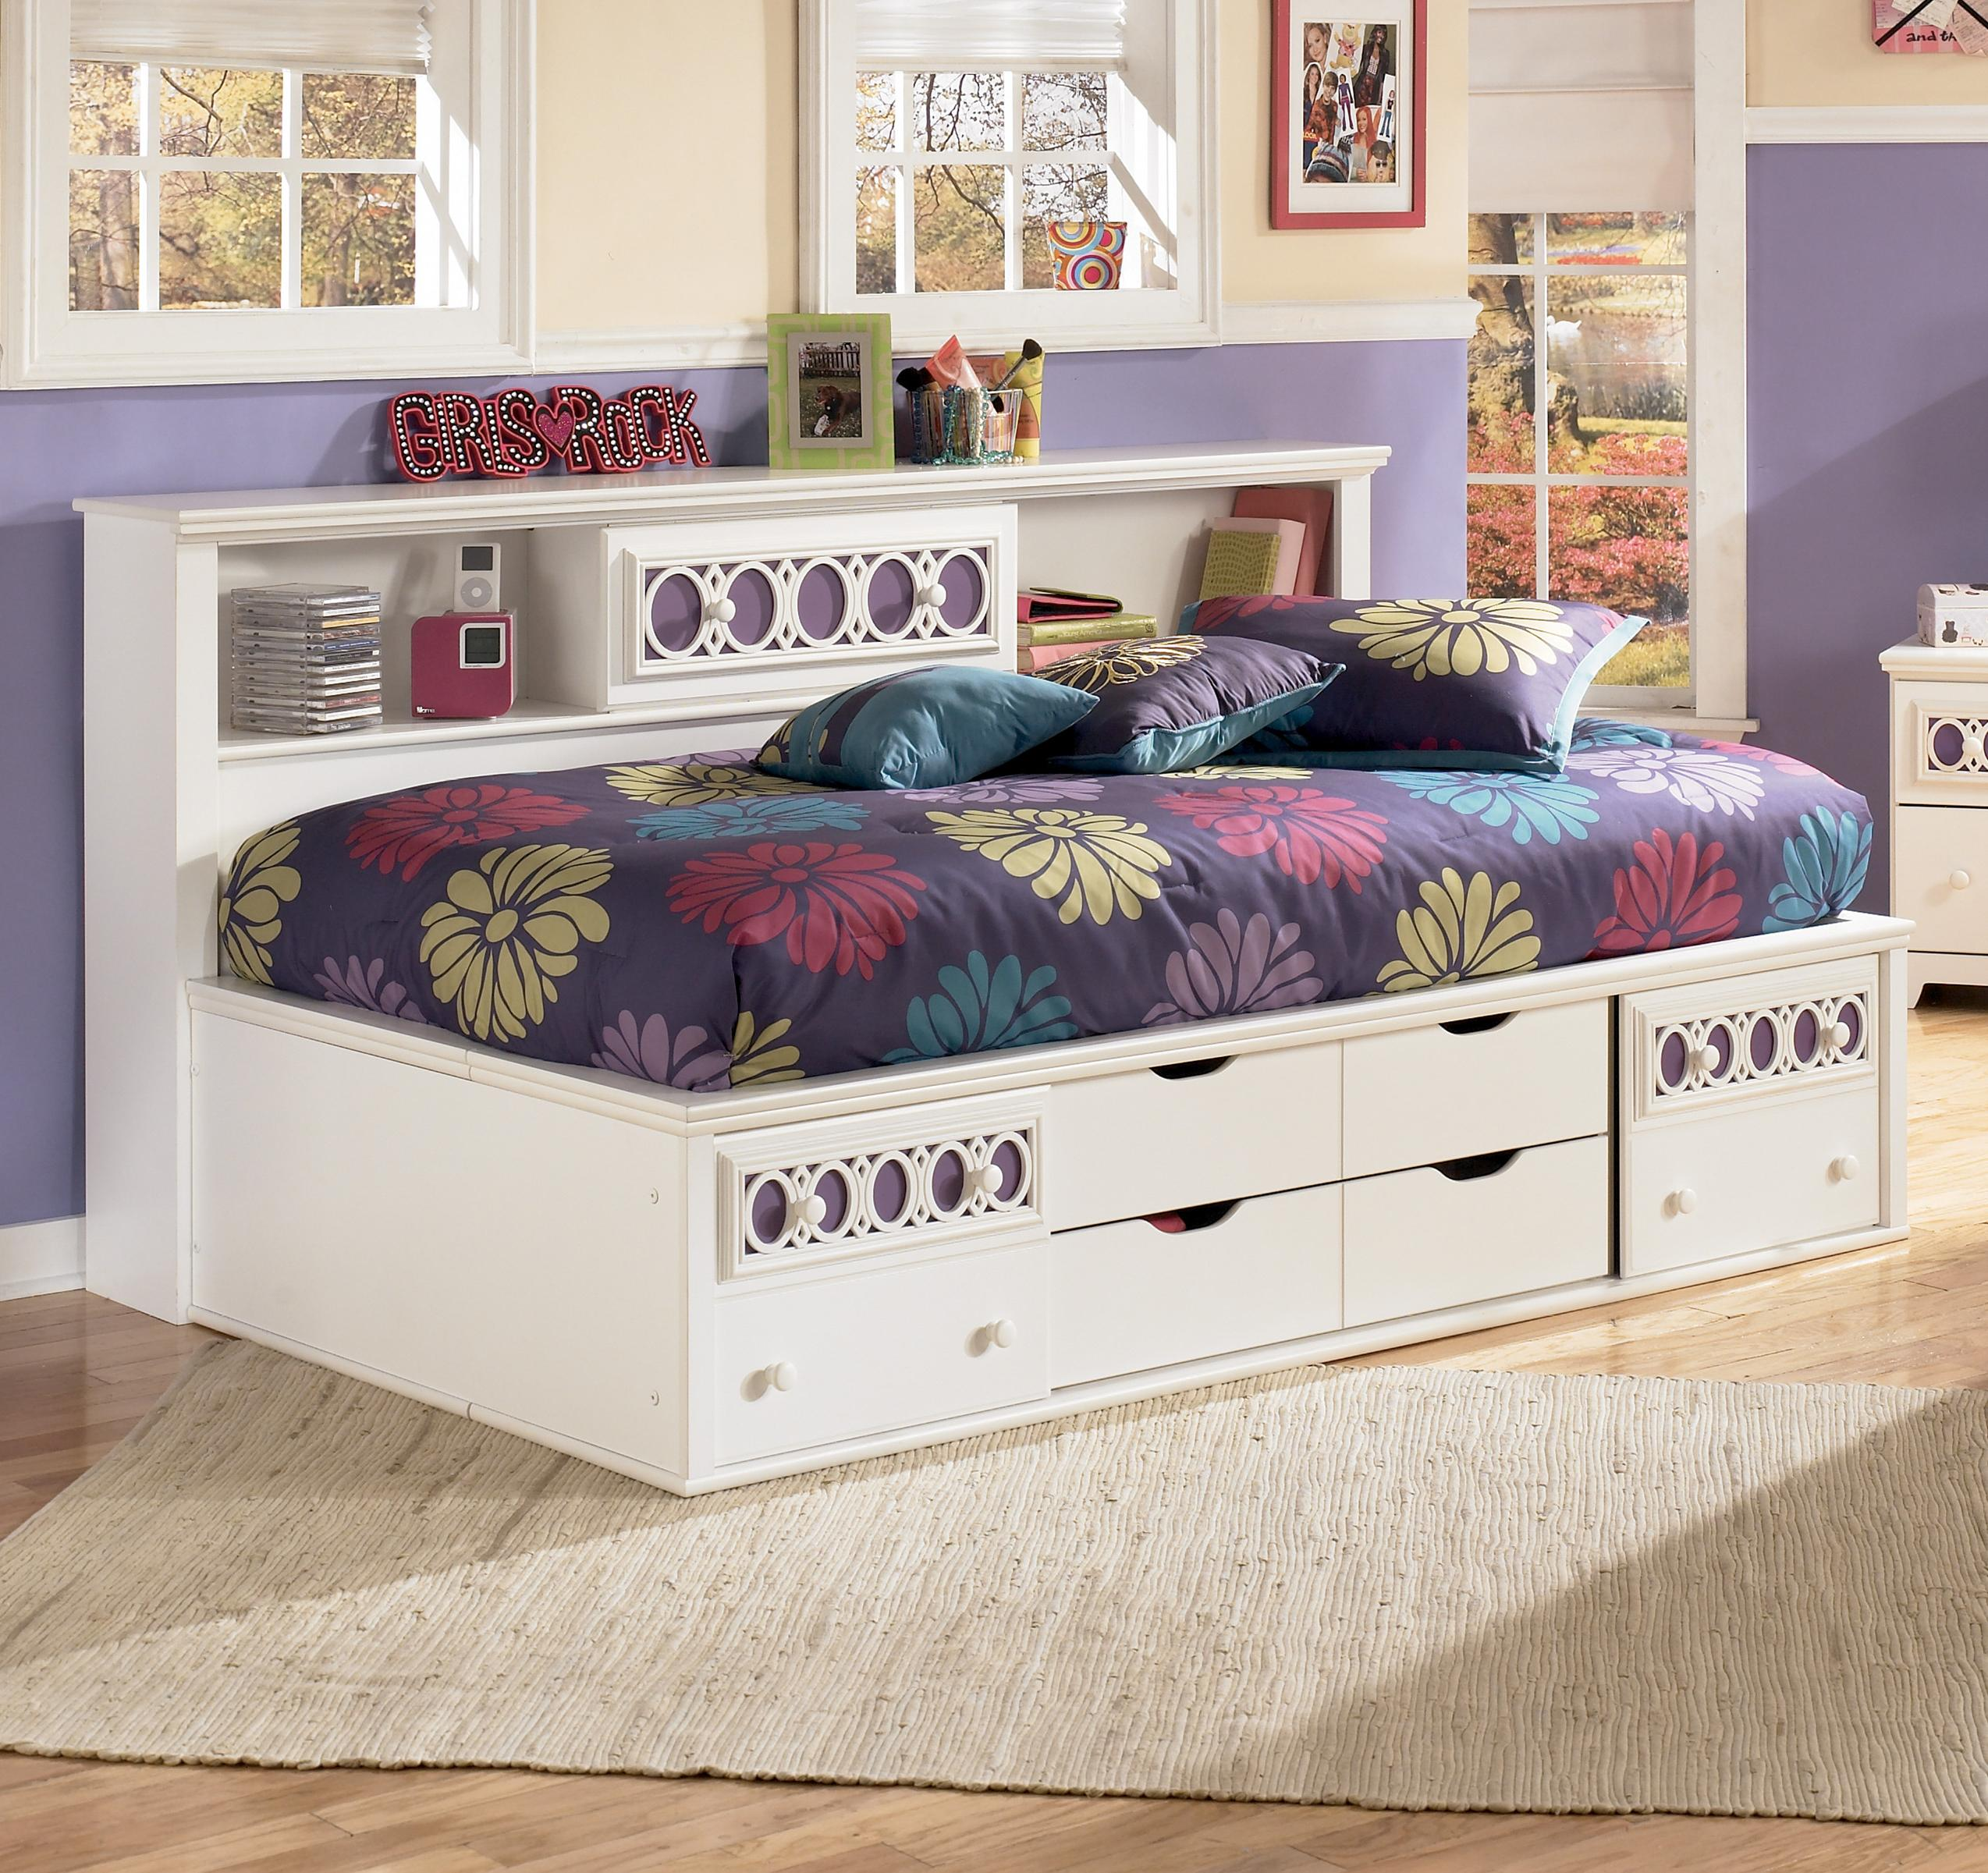 south storage cheap build and with of size to shelf full twin hwy headboards shore kids willow xl furniture bedroom mirror wall gray shelves bed chic l southshore trundle american white raw larger view how beds drawers collection diy headboard platform for zayley bookcase daybed queen